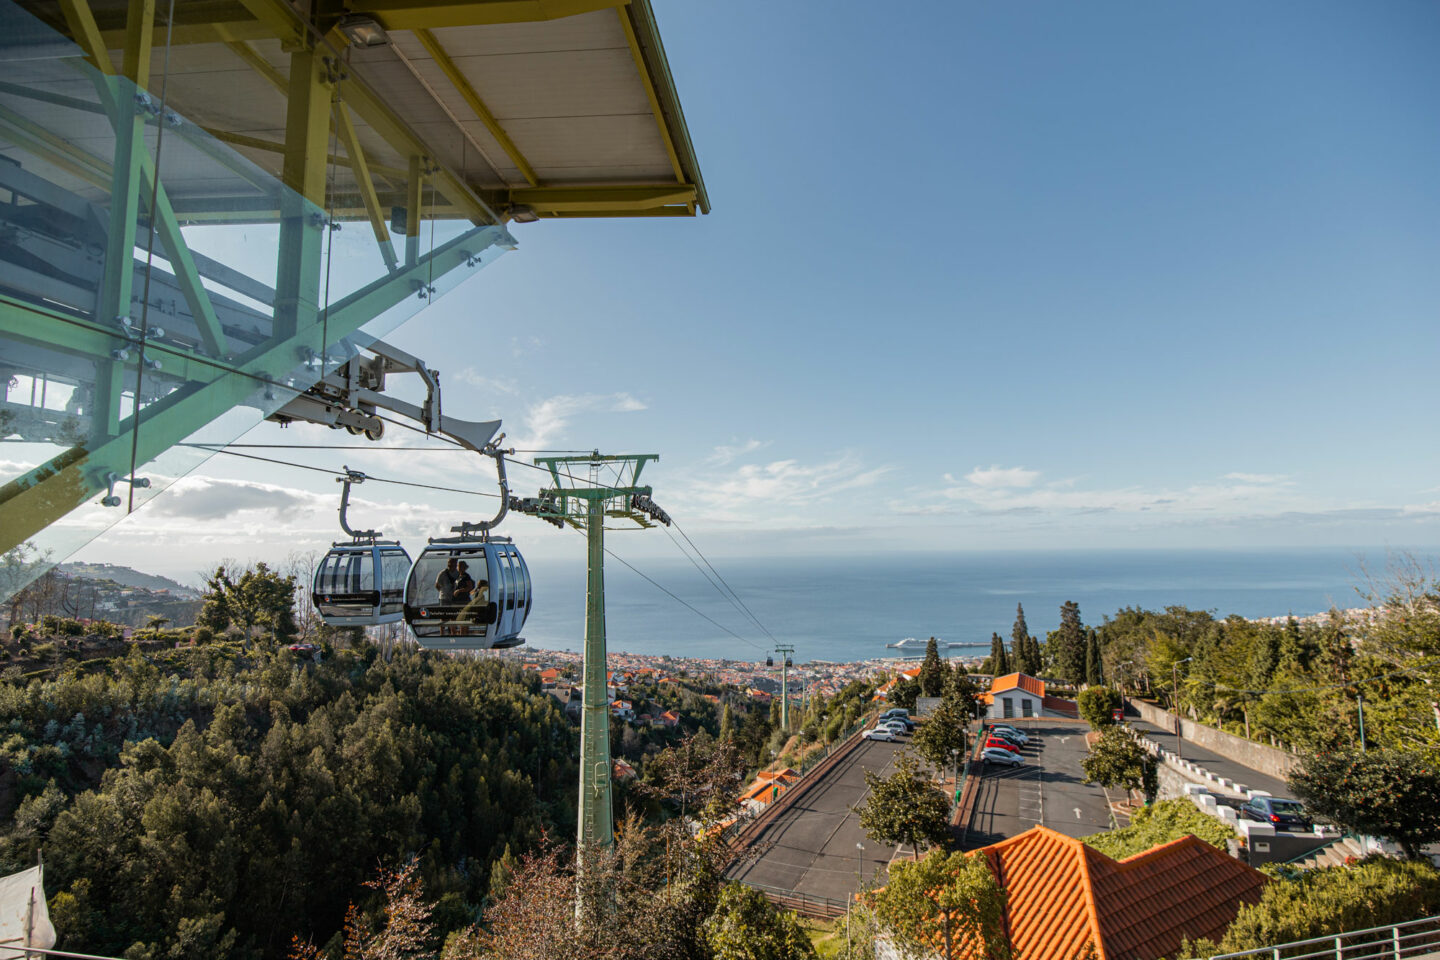 madeira-cable-car-Top-things-to-do-in-madeira-Bucket-list--Instagram-Story-Template--kelseyinlondon-Kelsey-Heinrichs--What-to-do-in-madeira--Where-to-go-in-madeira-top-places-in-madeira-